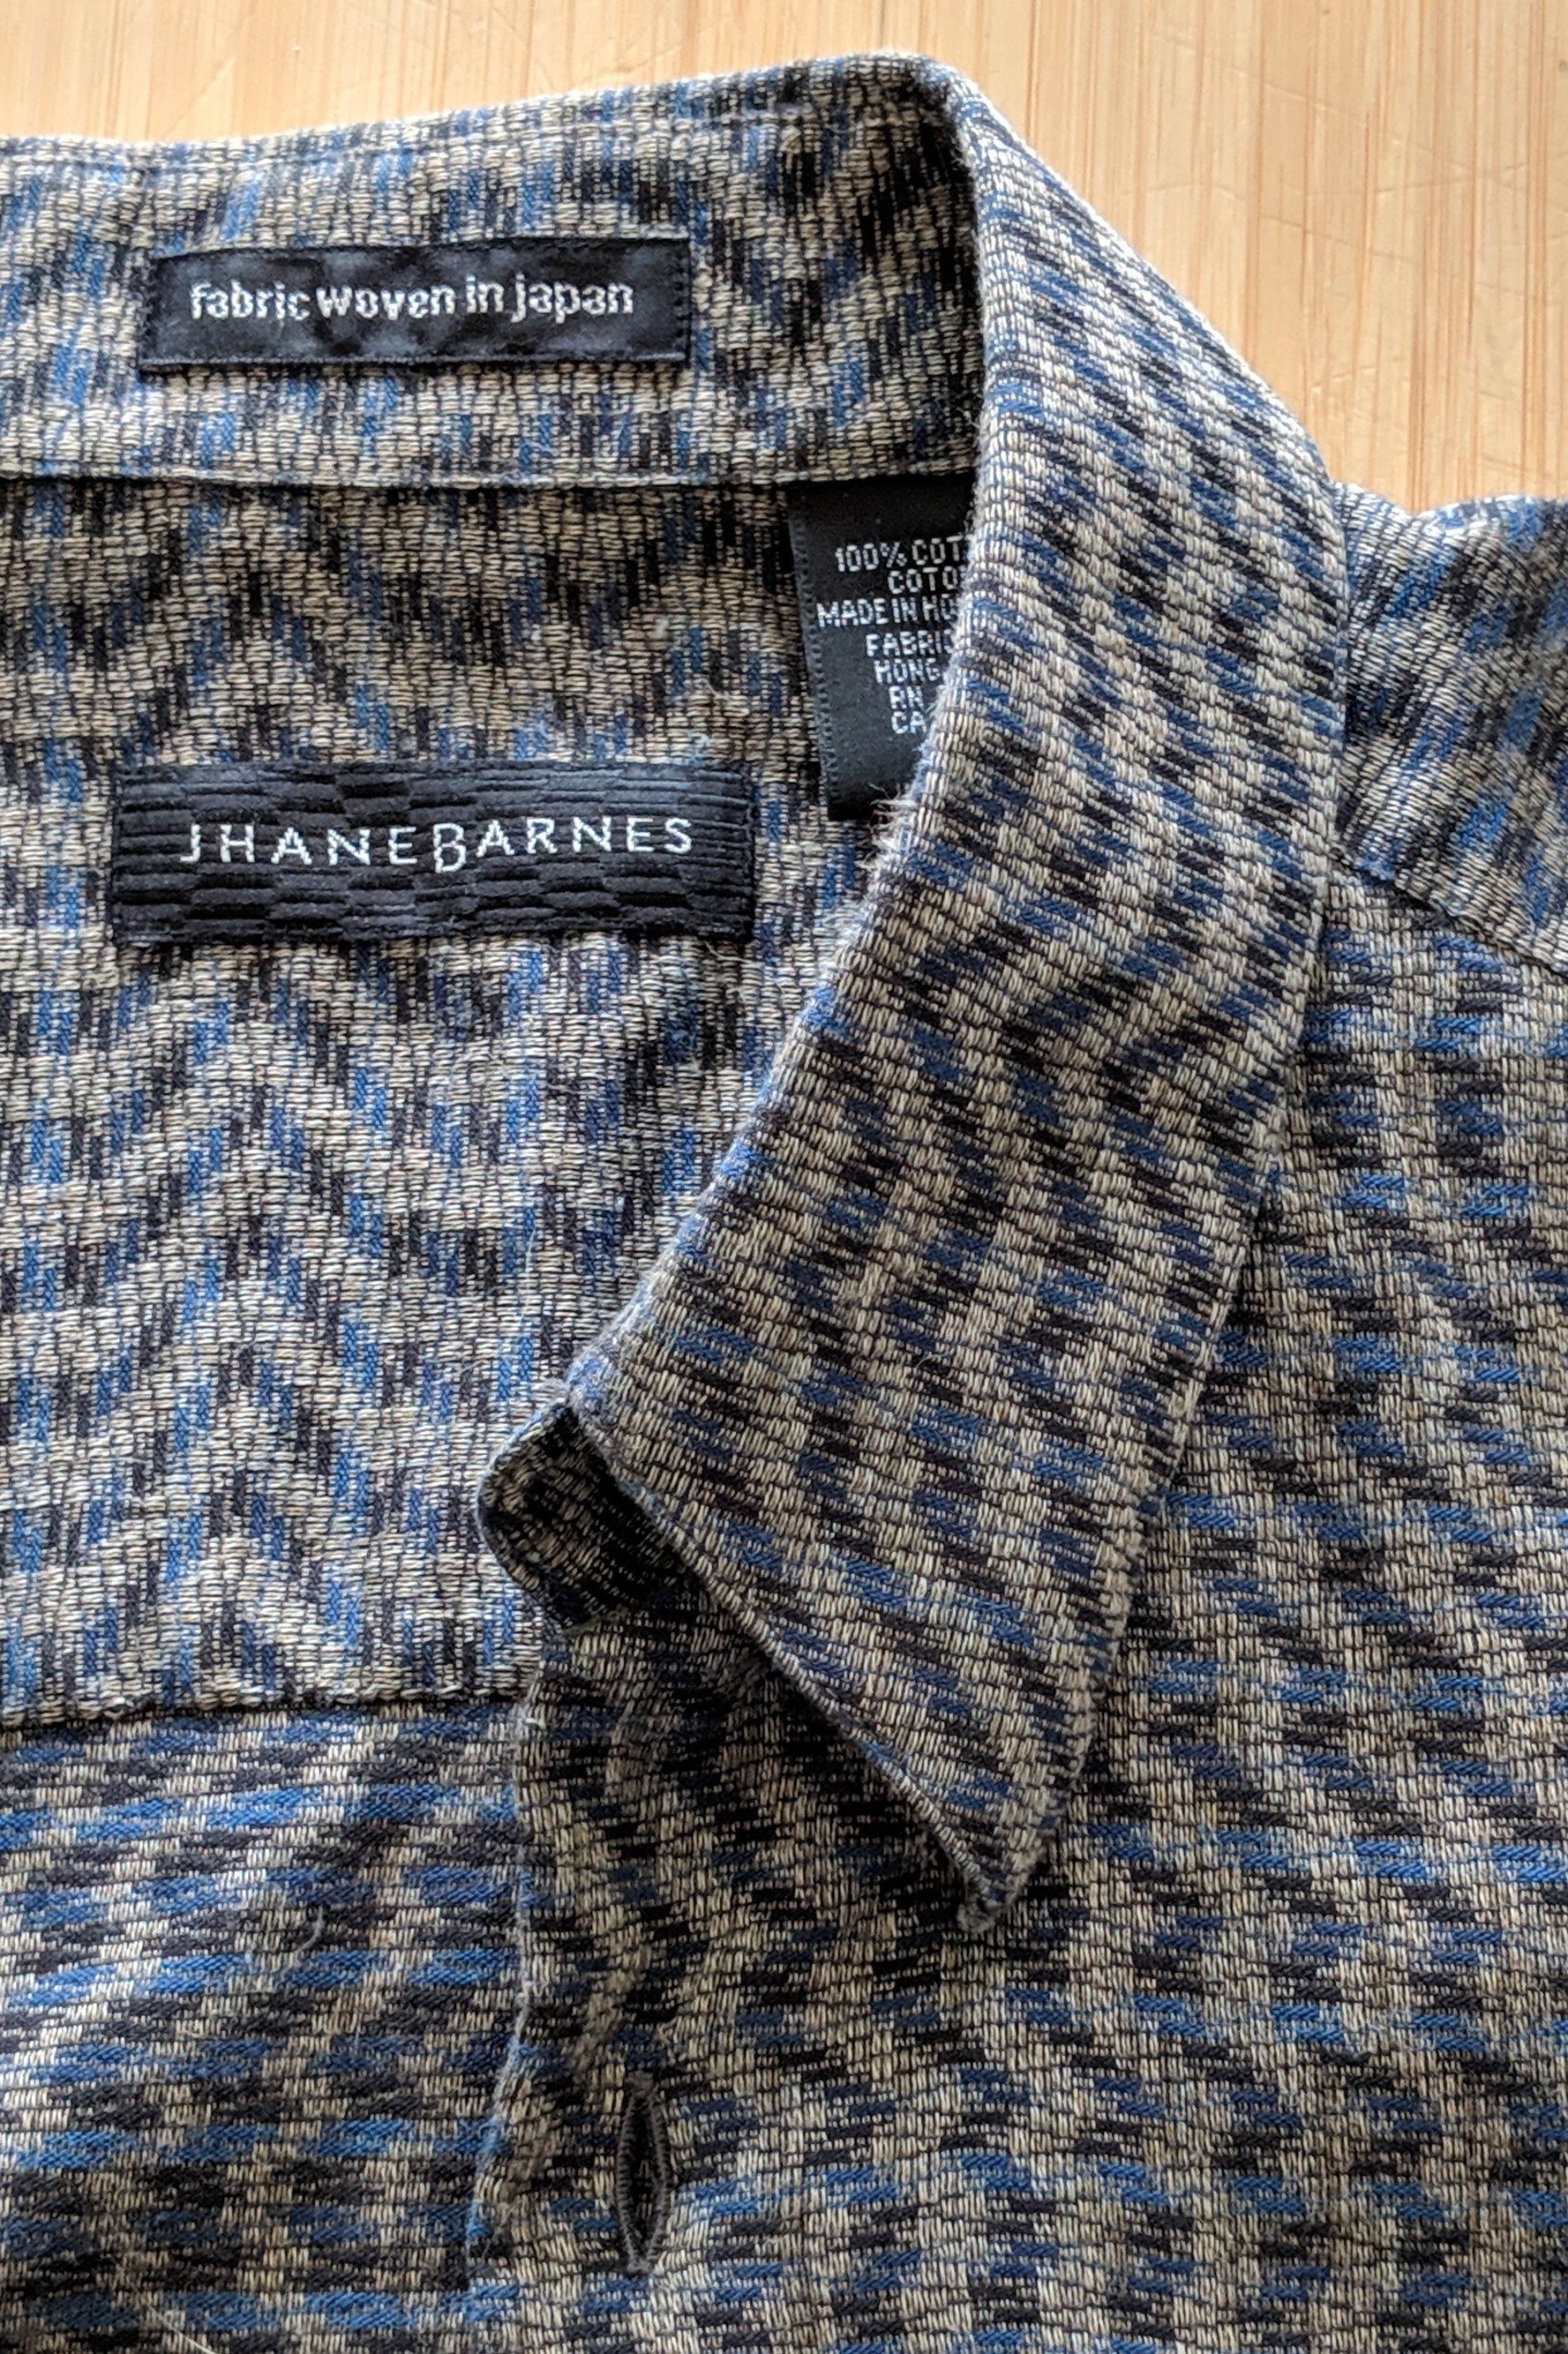 Jhane Barnes shirt, fabric woven in Japan